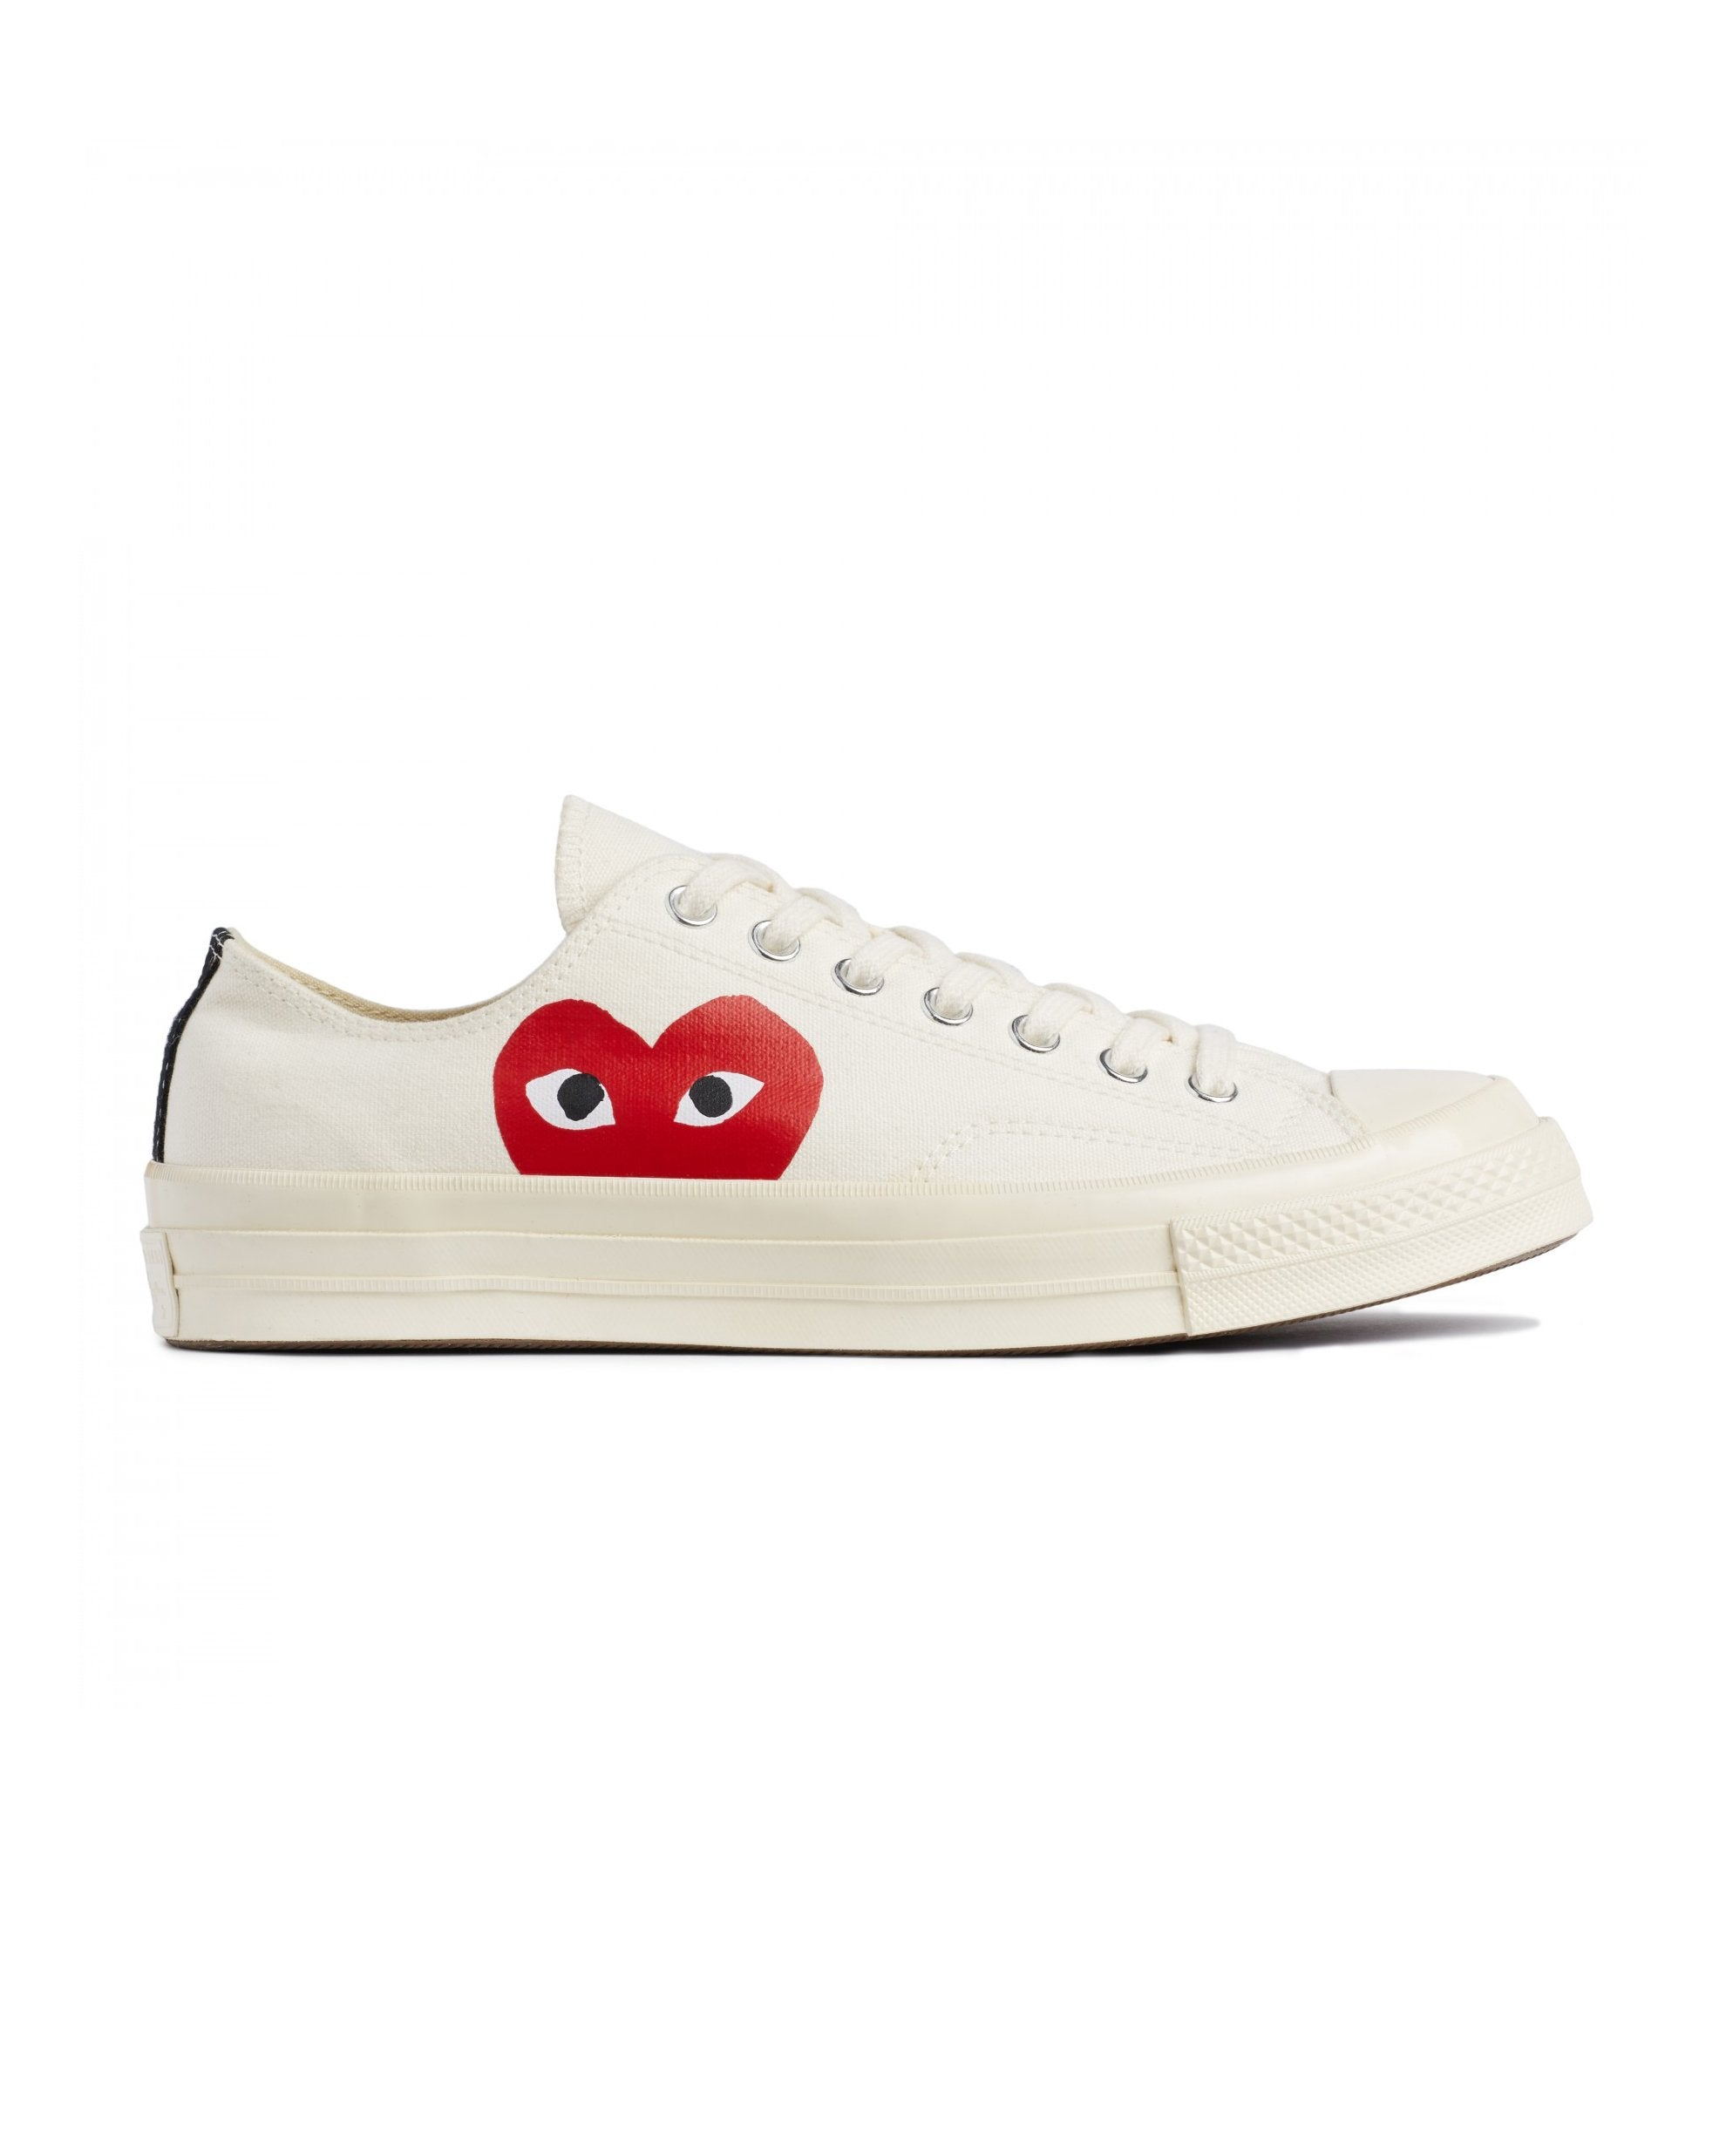 CDG PLAY x Converse CT70 Big Heart Low Top White